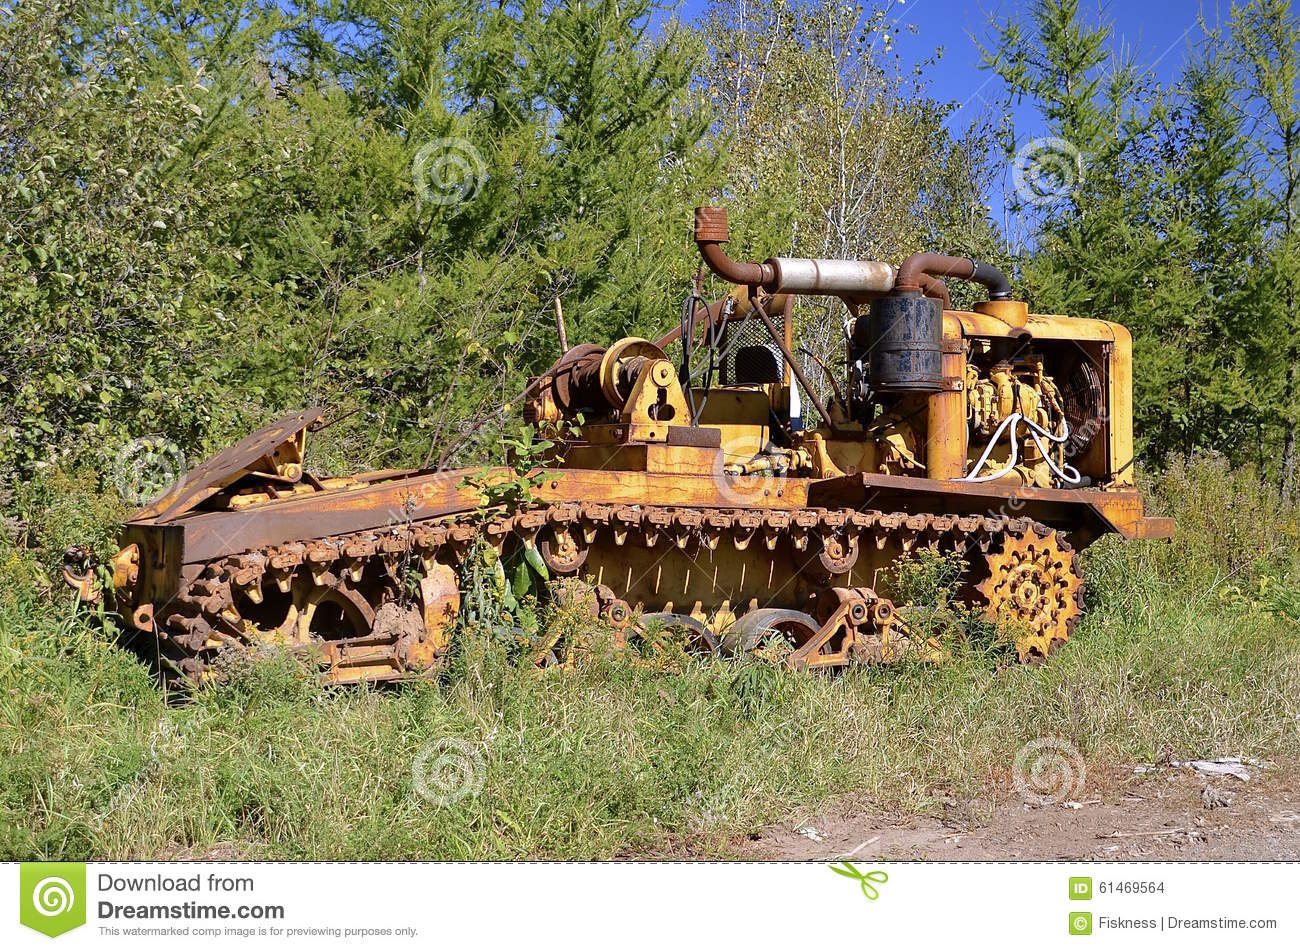 Old Tractor With Tracks : Old tractor log crawler on tracks stock photo image